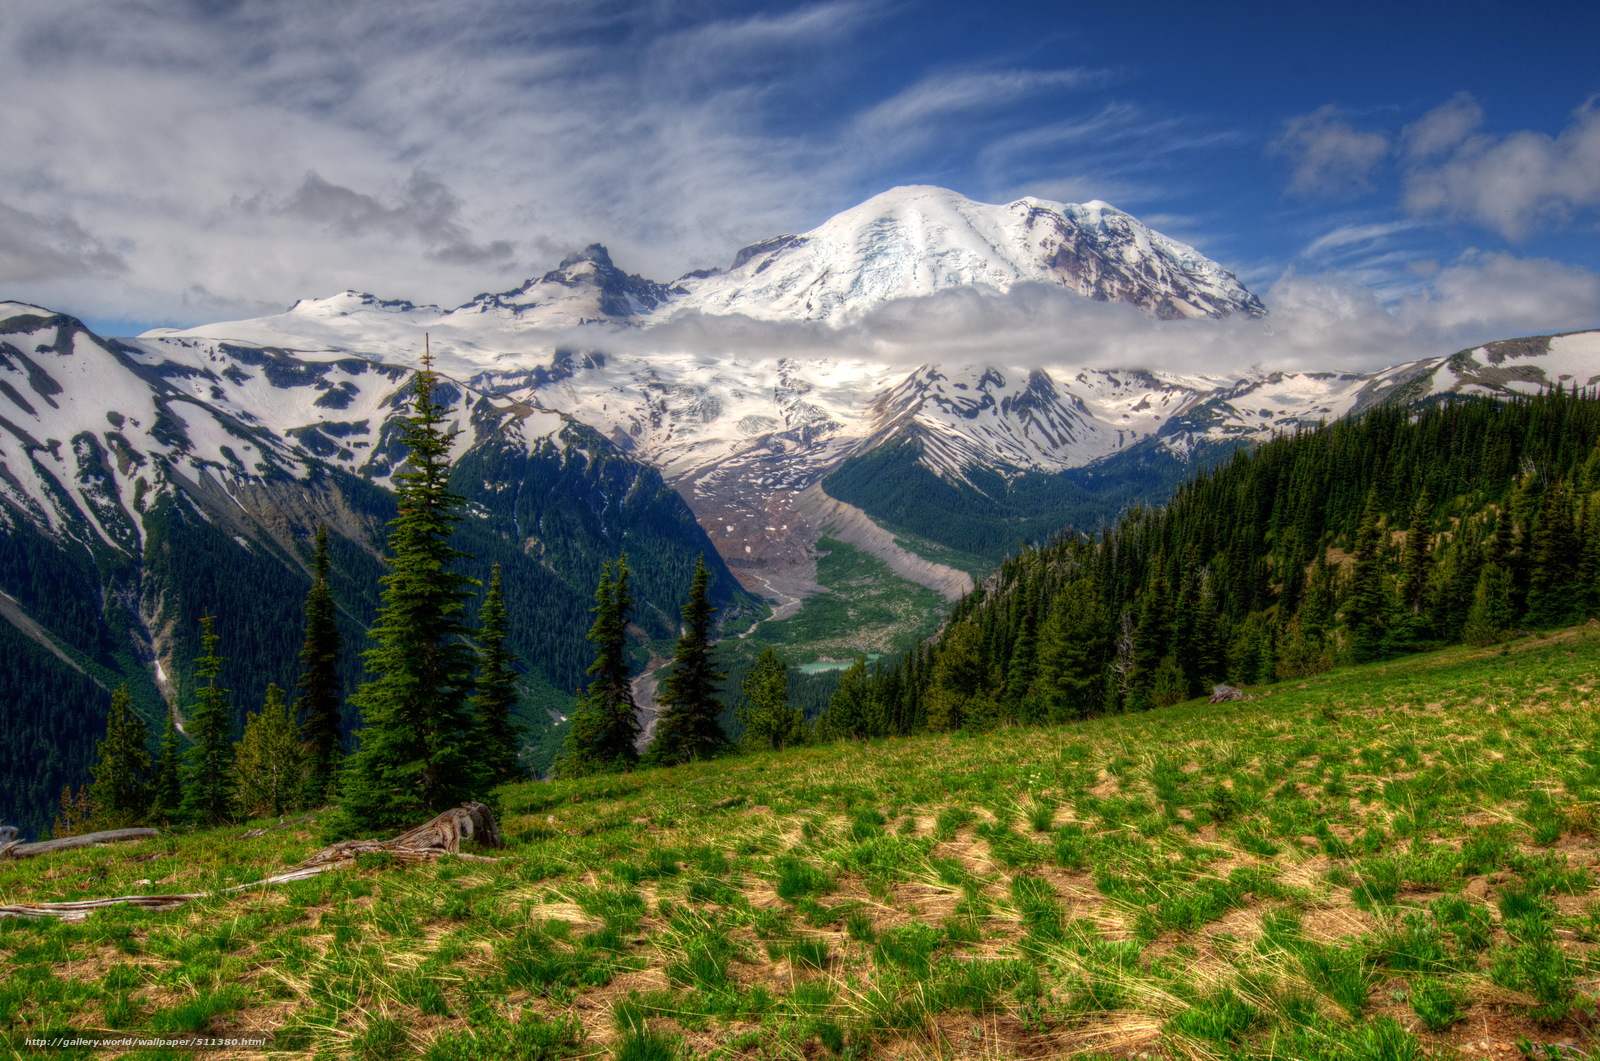 wallpaper Mountains landscape mt rainier Washington desktop 1600x1061